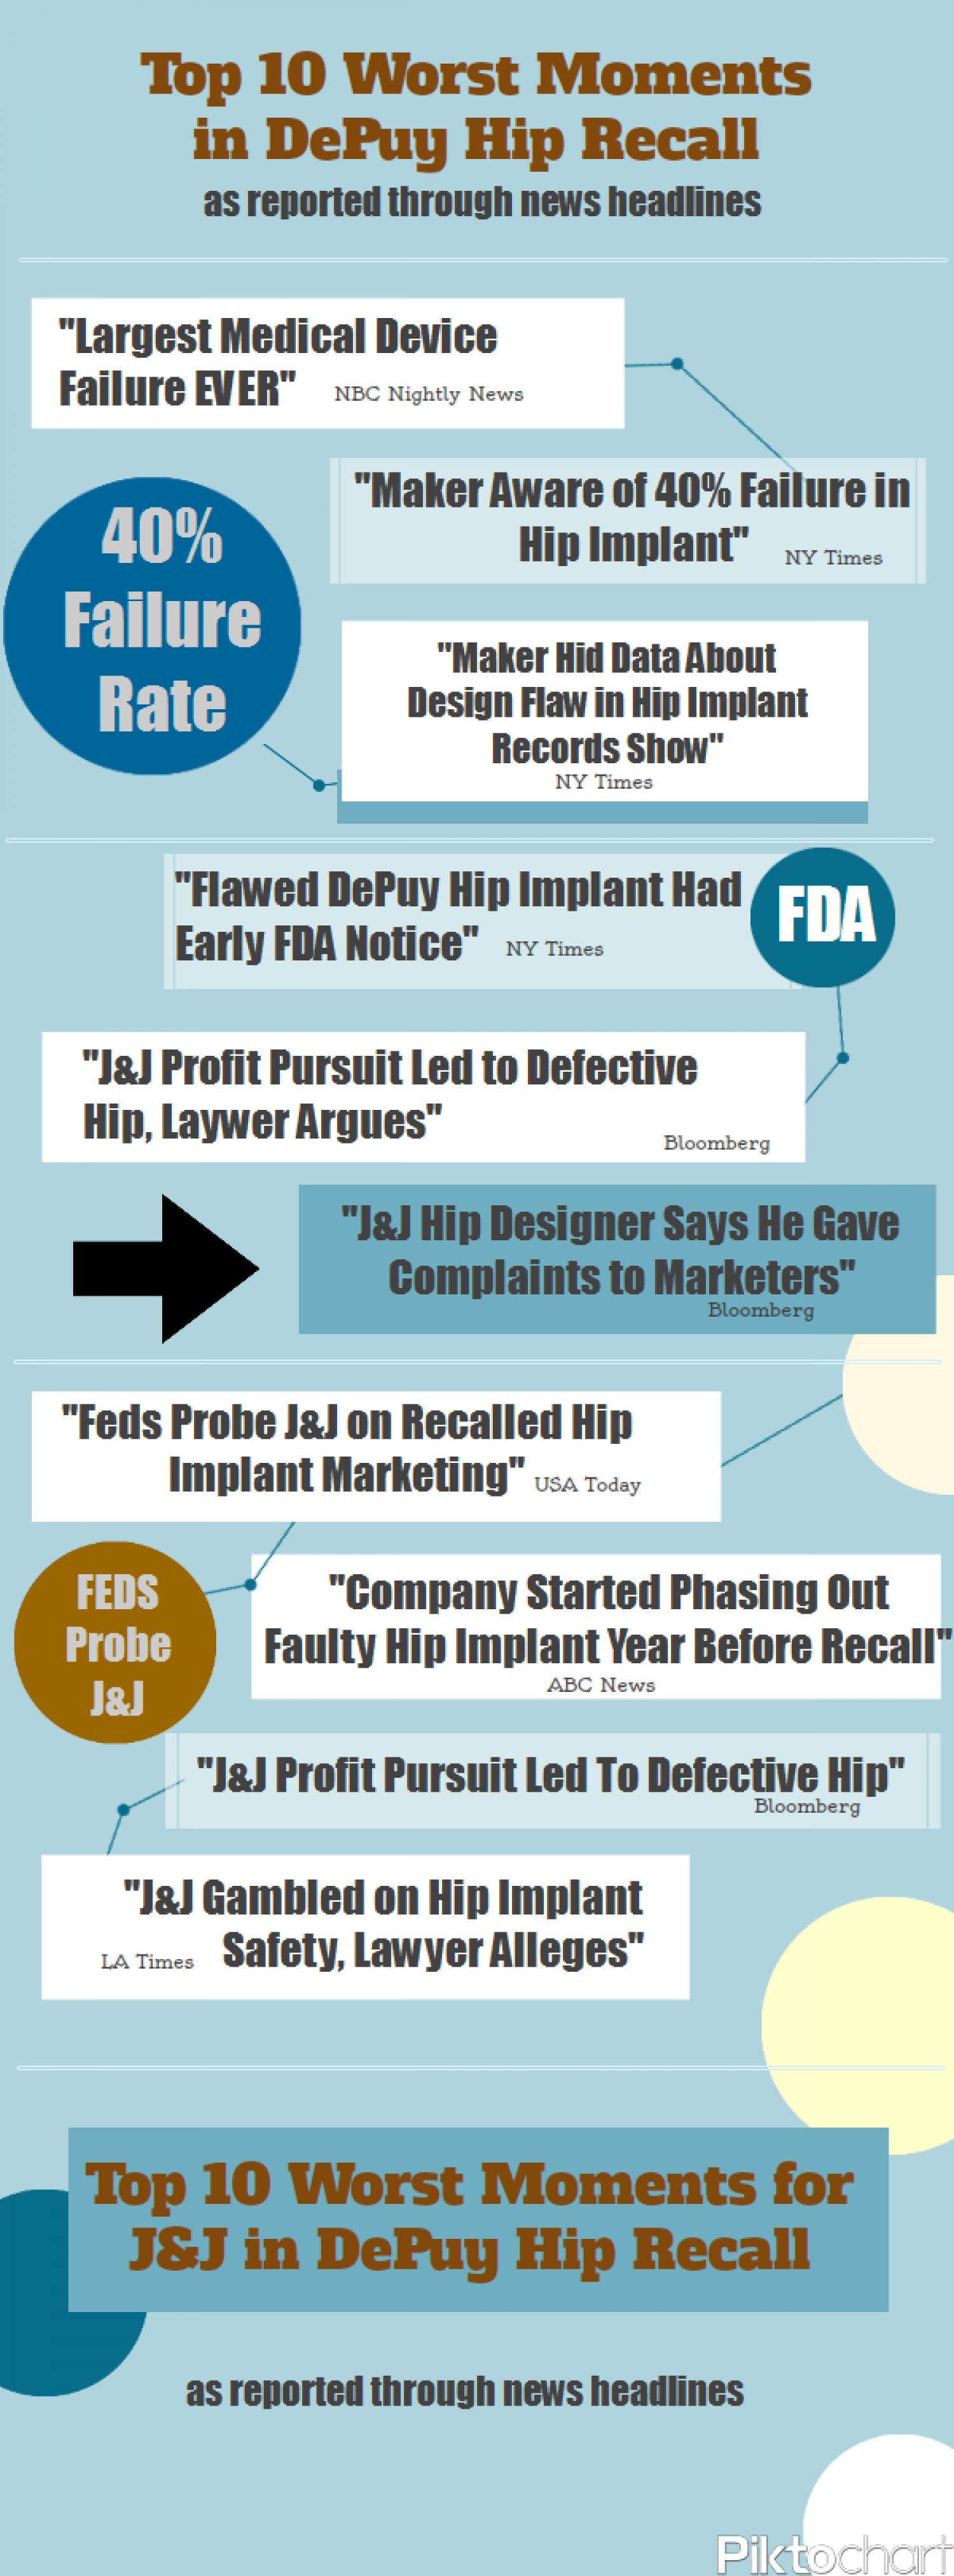 Top 10 Worst News Headlines for DePuy Hip Recall Infographic